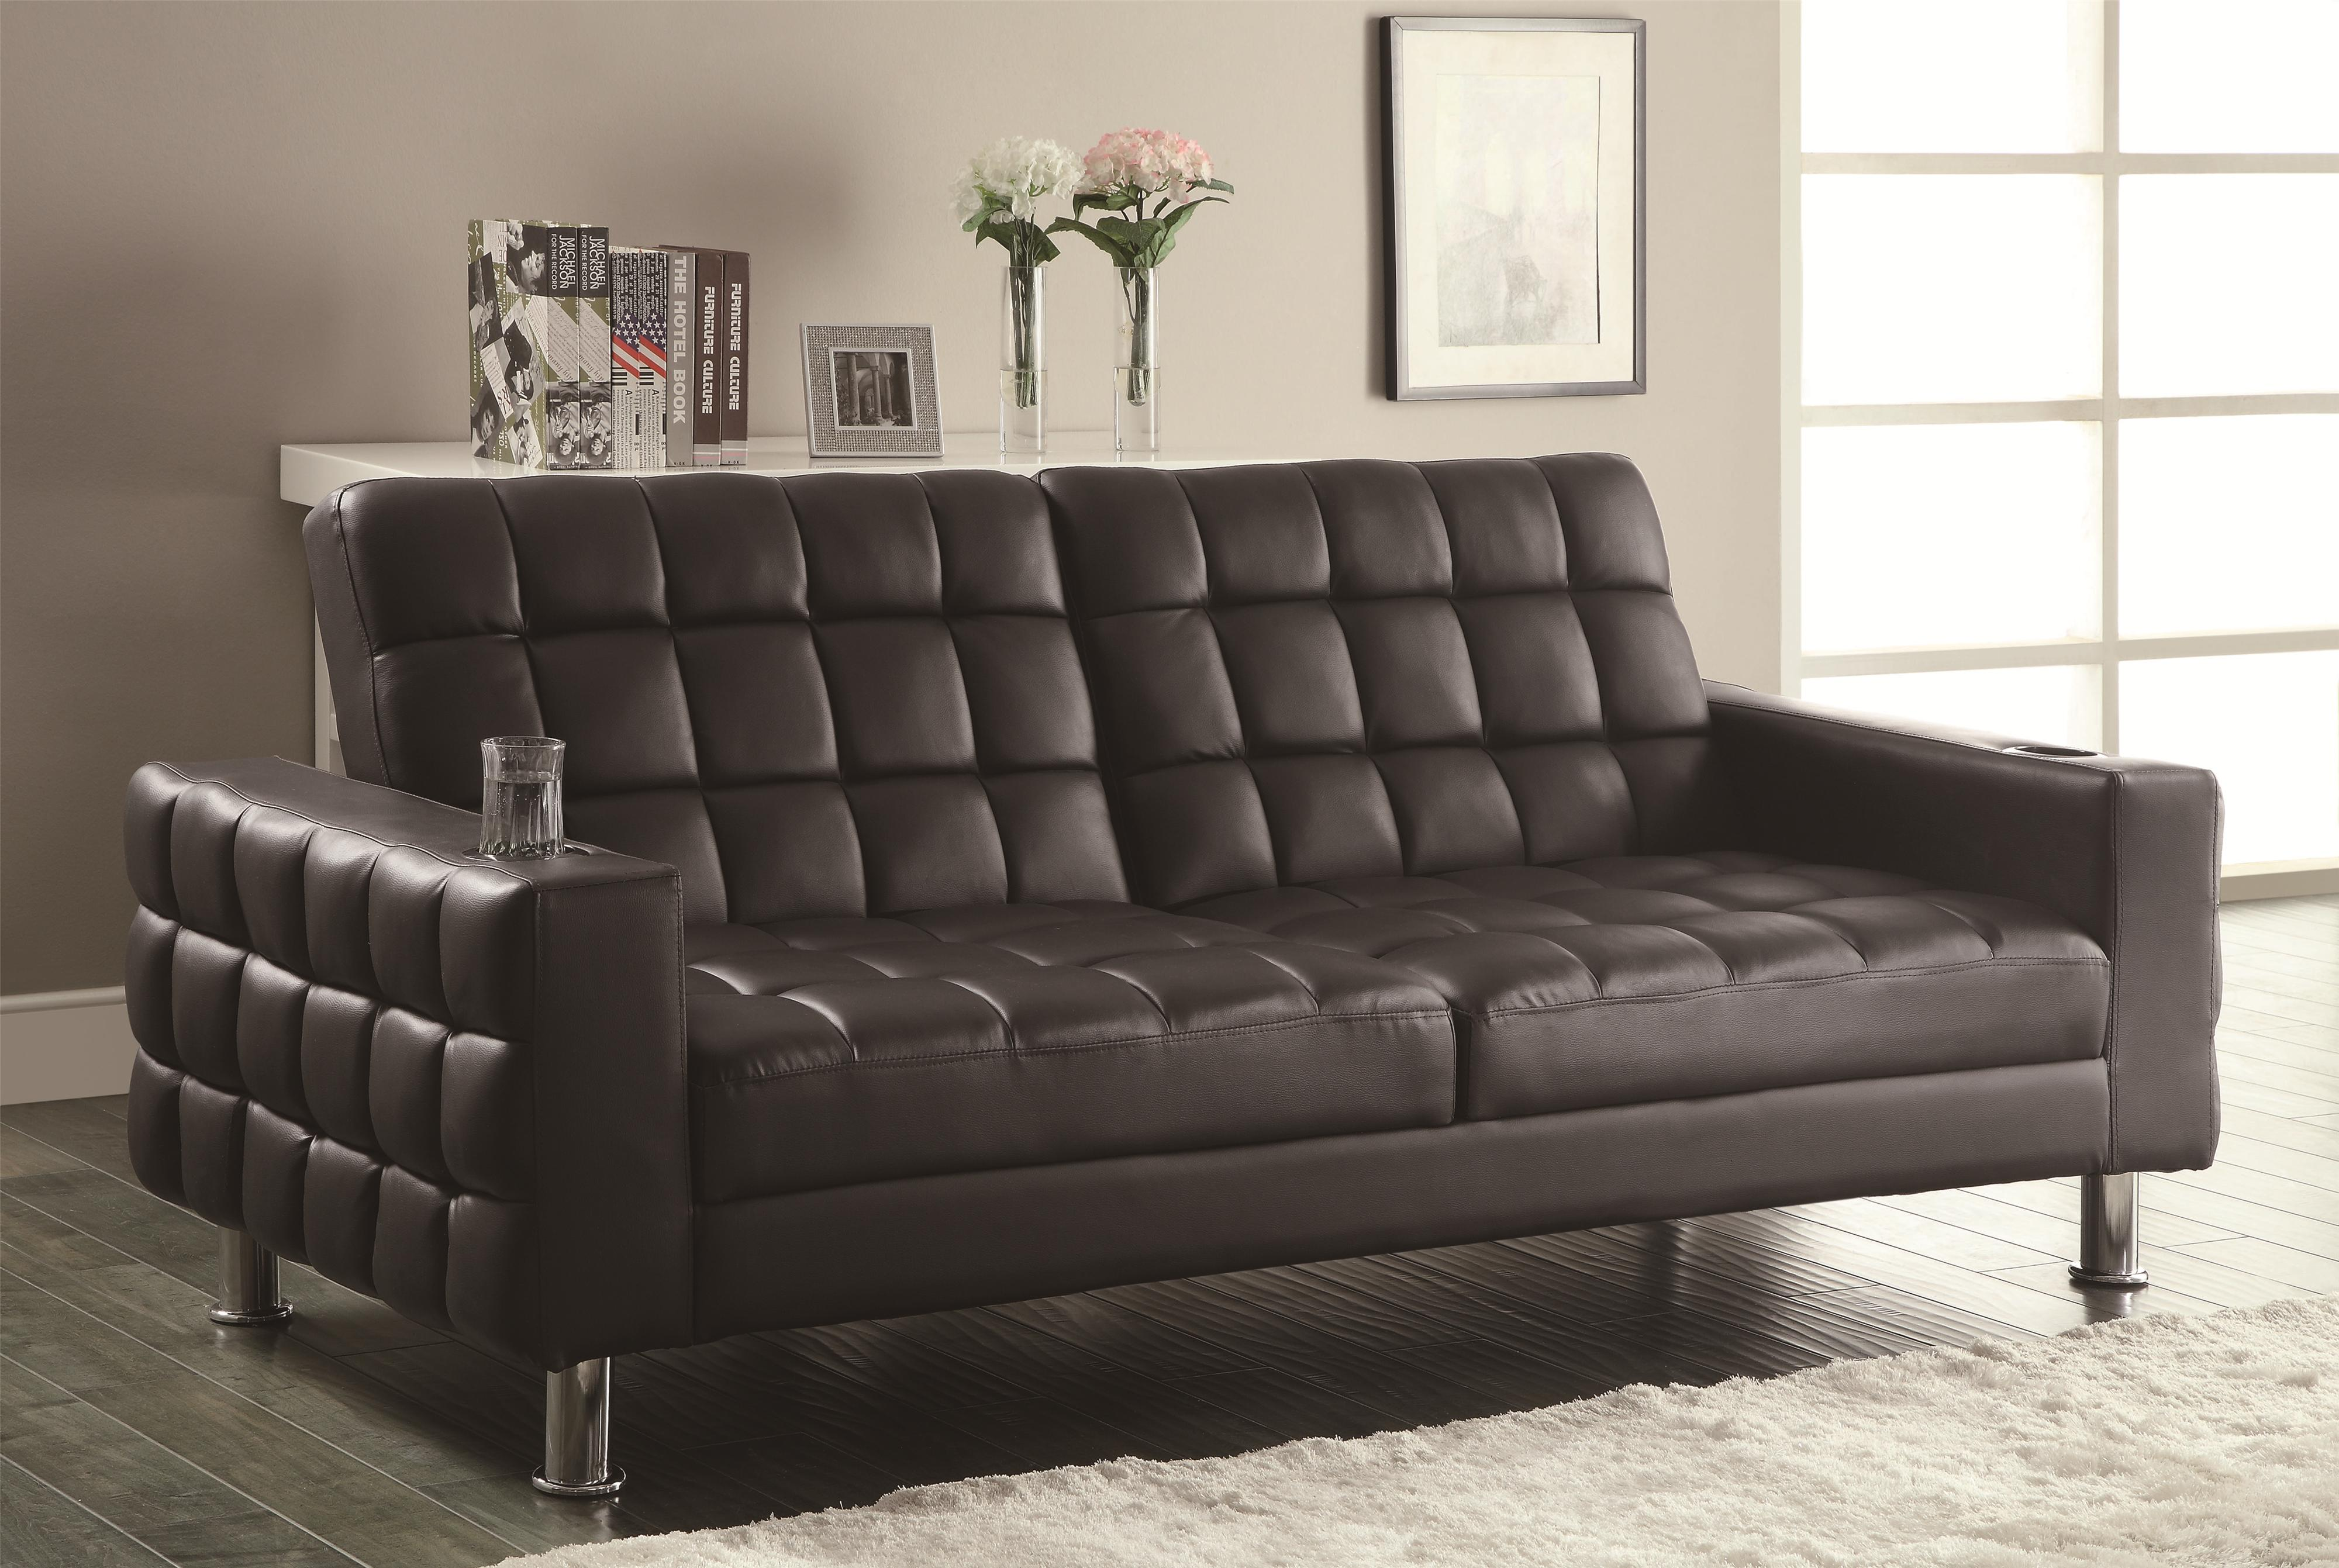 Coaster Sofa Beds and Futons -  Adjustable Sofa - Item Number: 300294